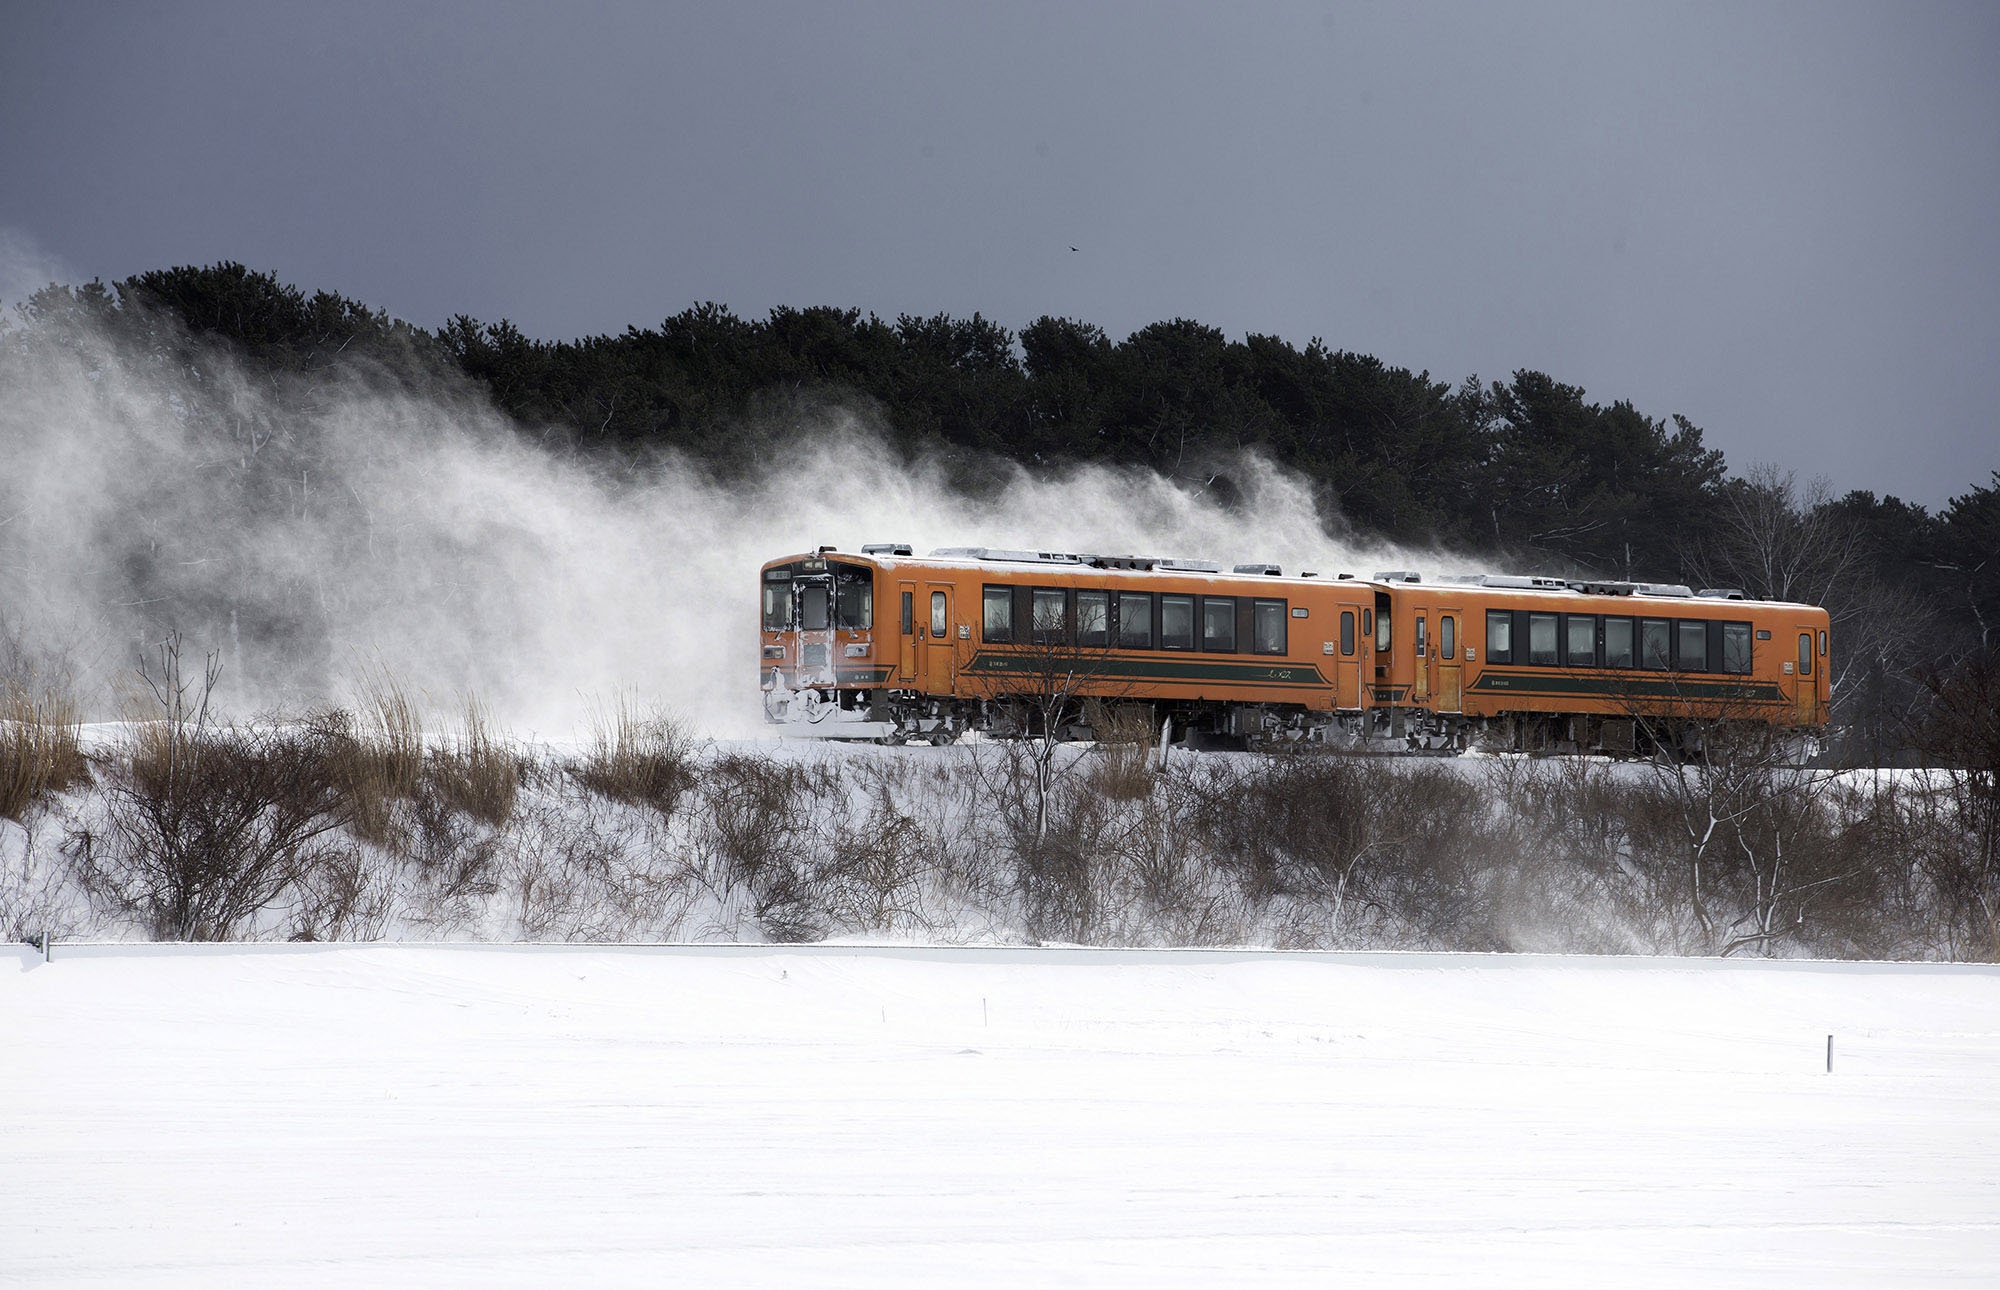 A Wintry Ride in a Japanese Potbelly Stove Train - The Atlantic